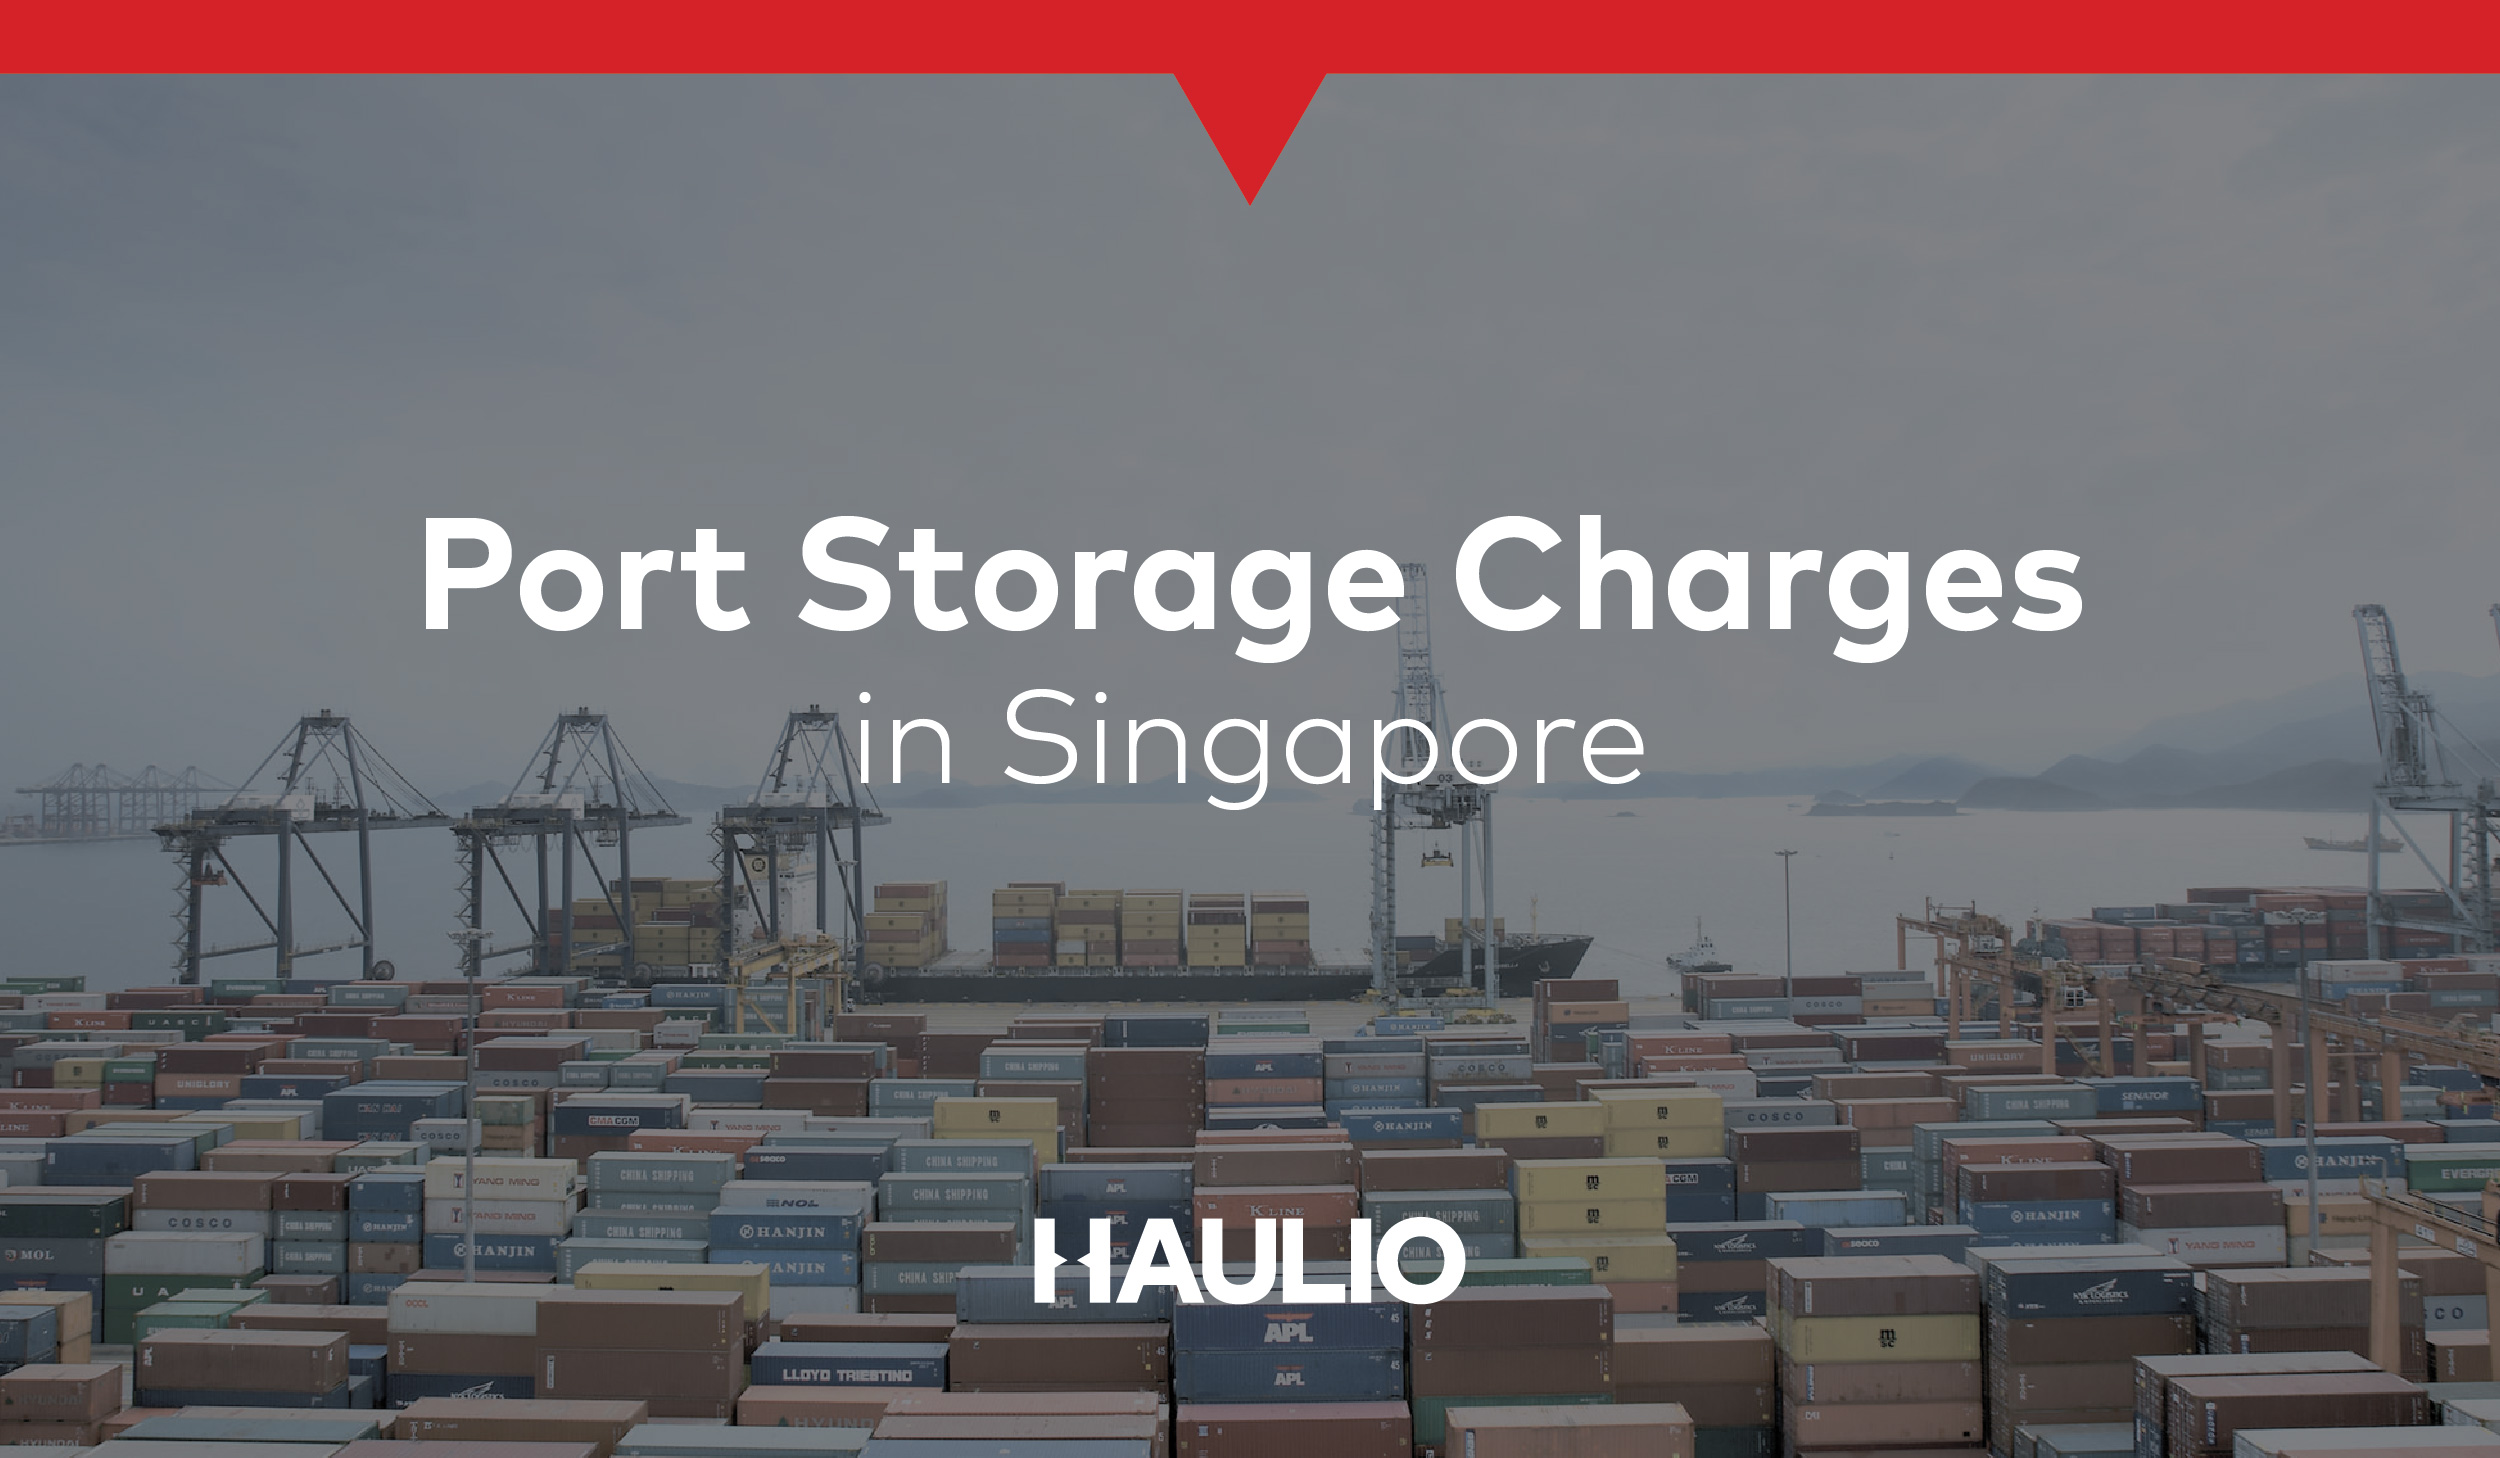 What are PSA Port Storage Charges for Containers in Singapore?